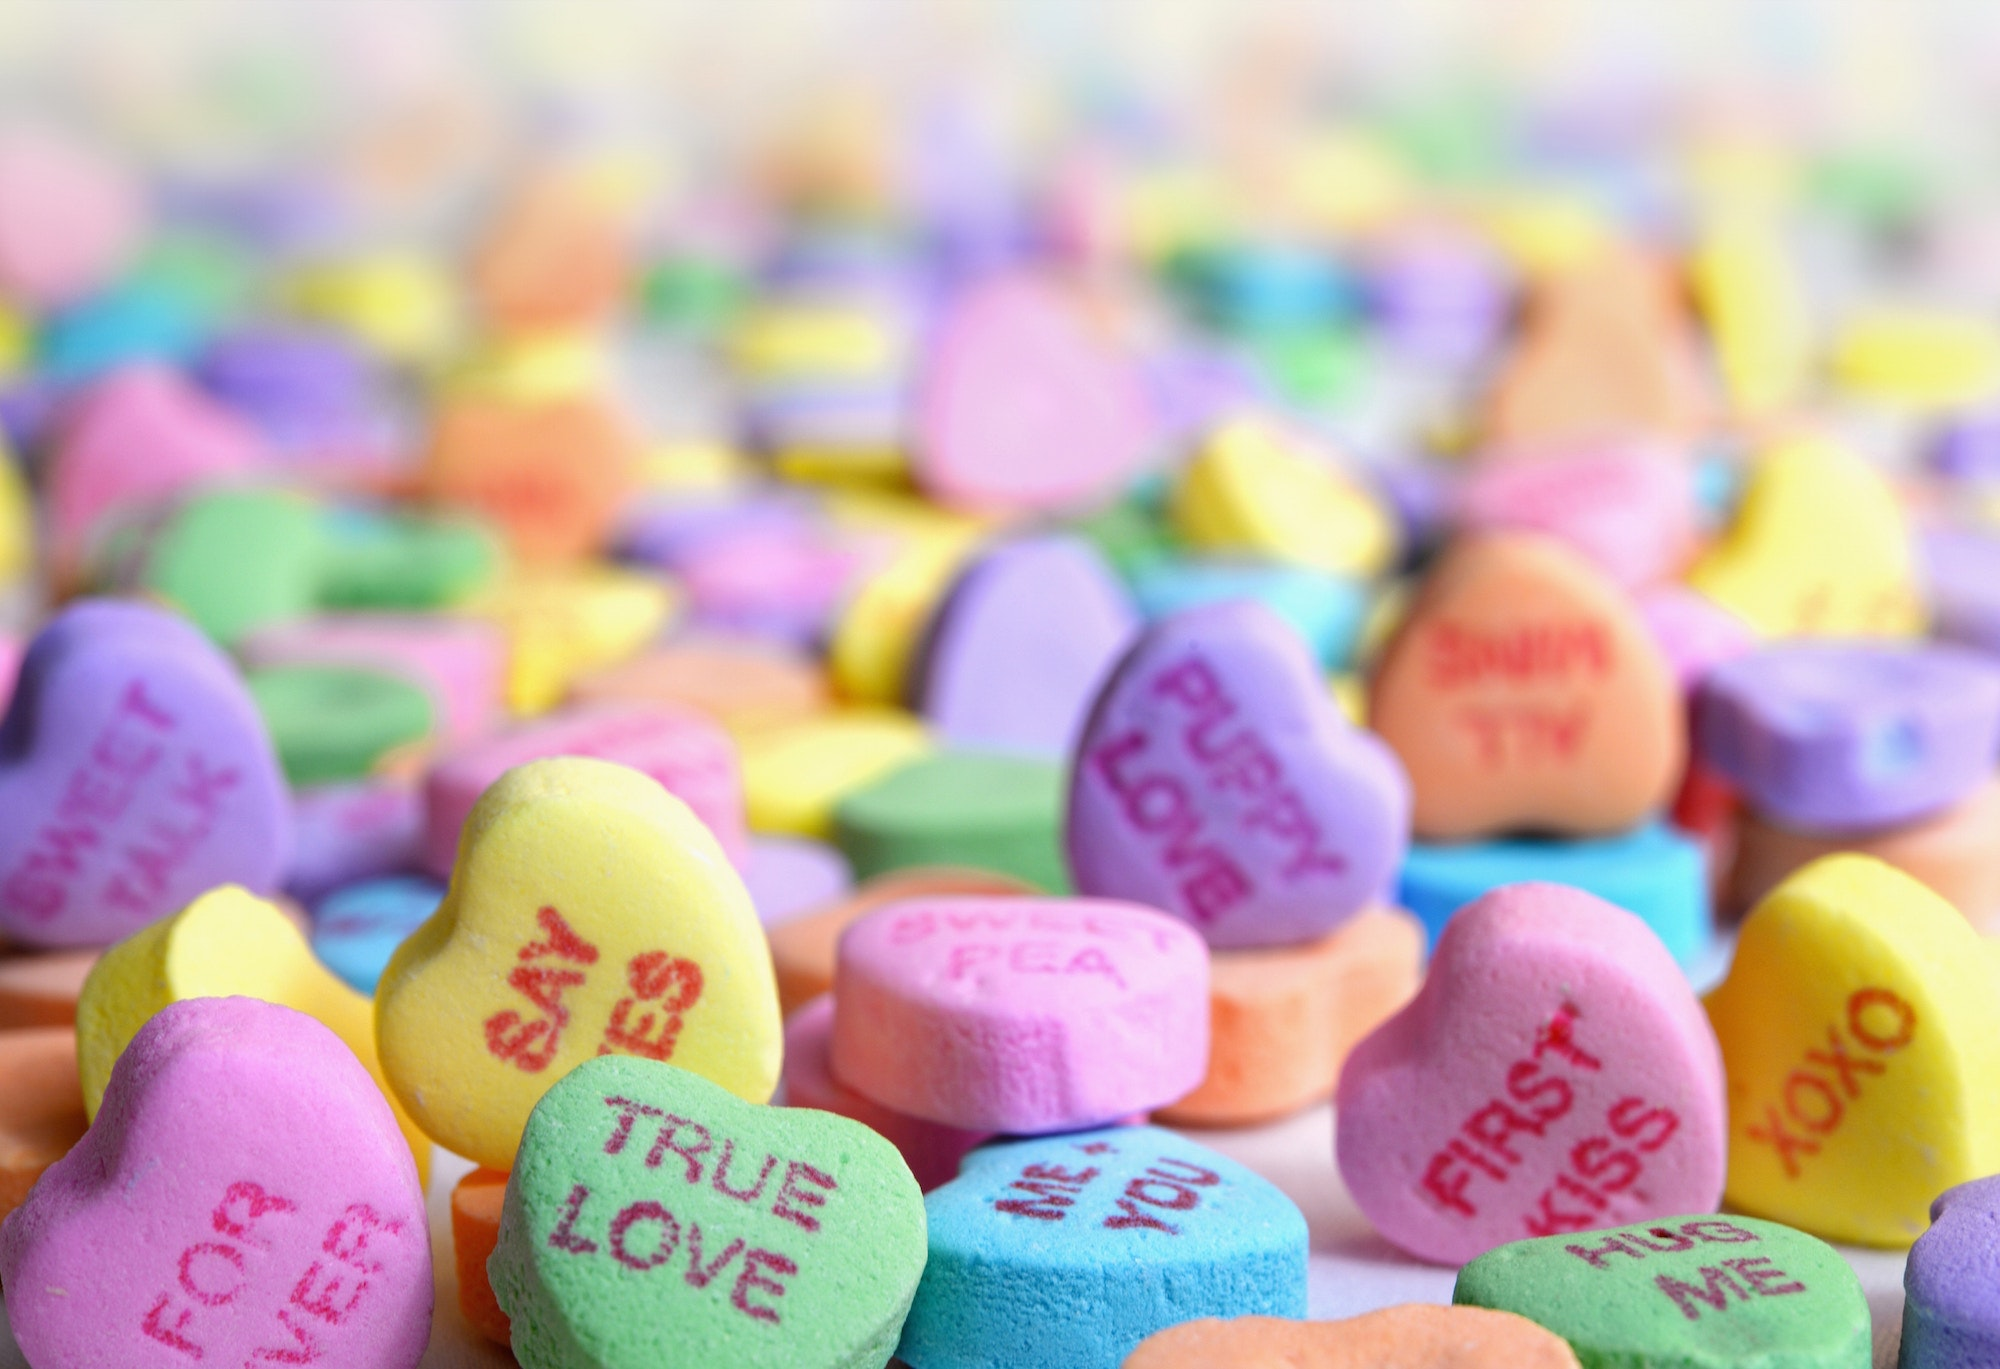 10 Cute Valentine S Day Gifts For Kids Teamsnap Fundraising